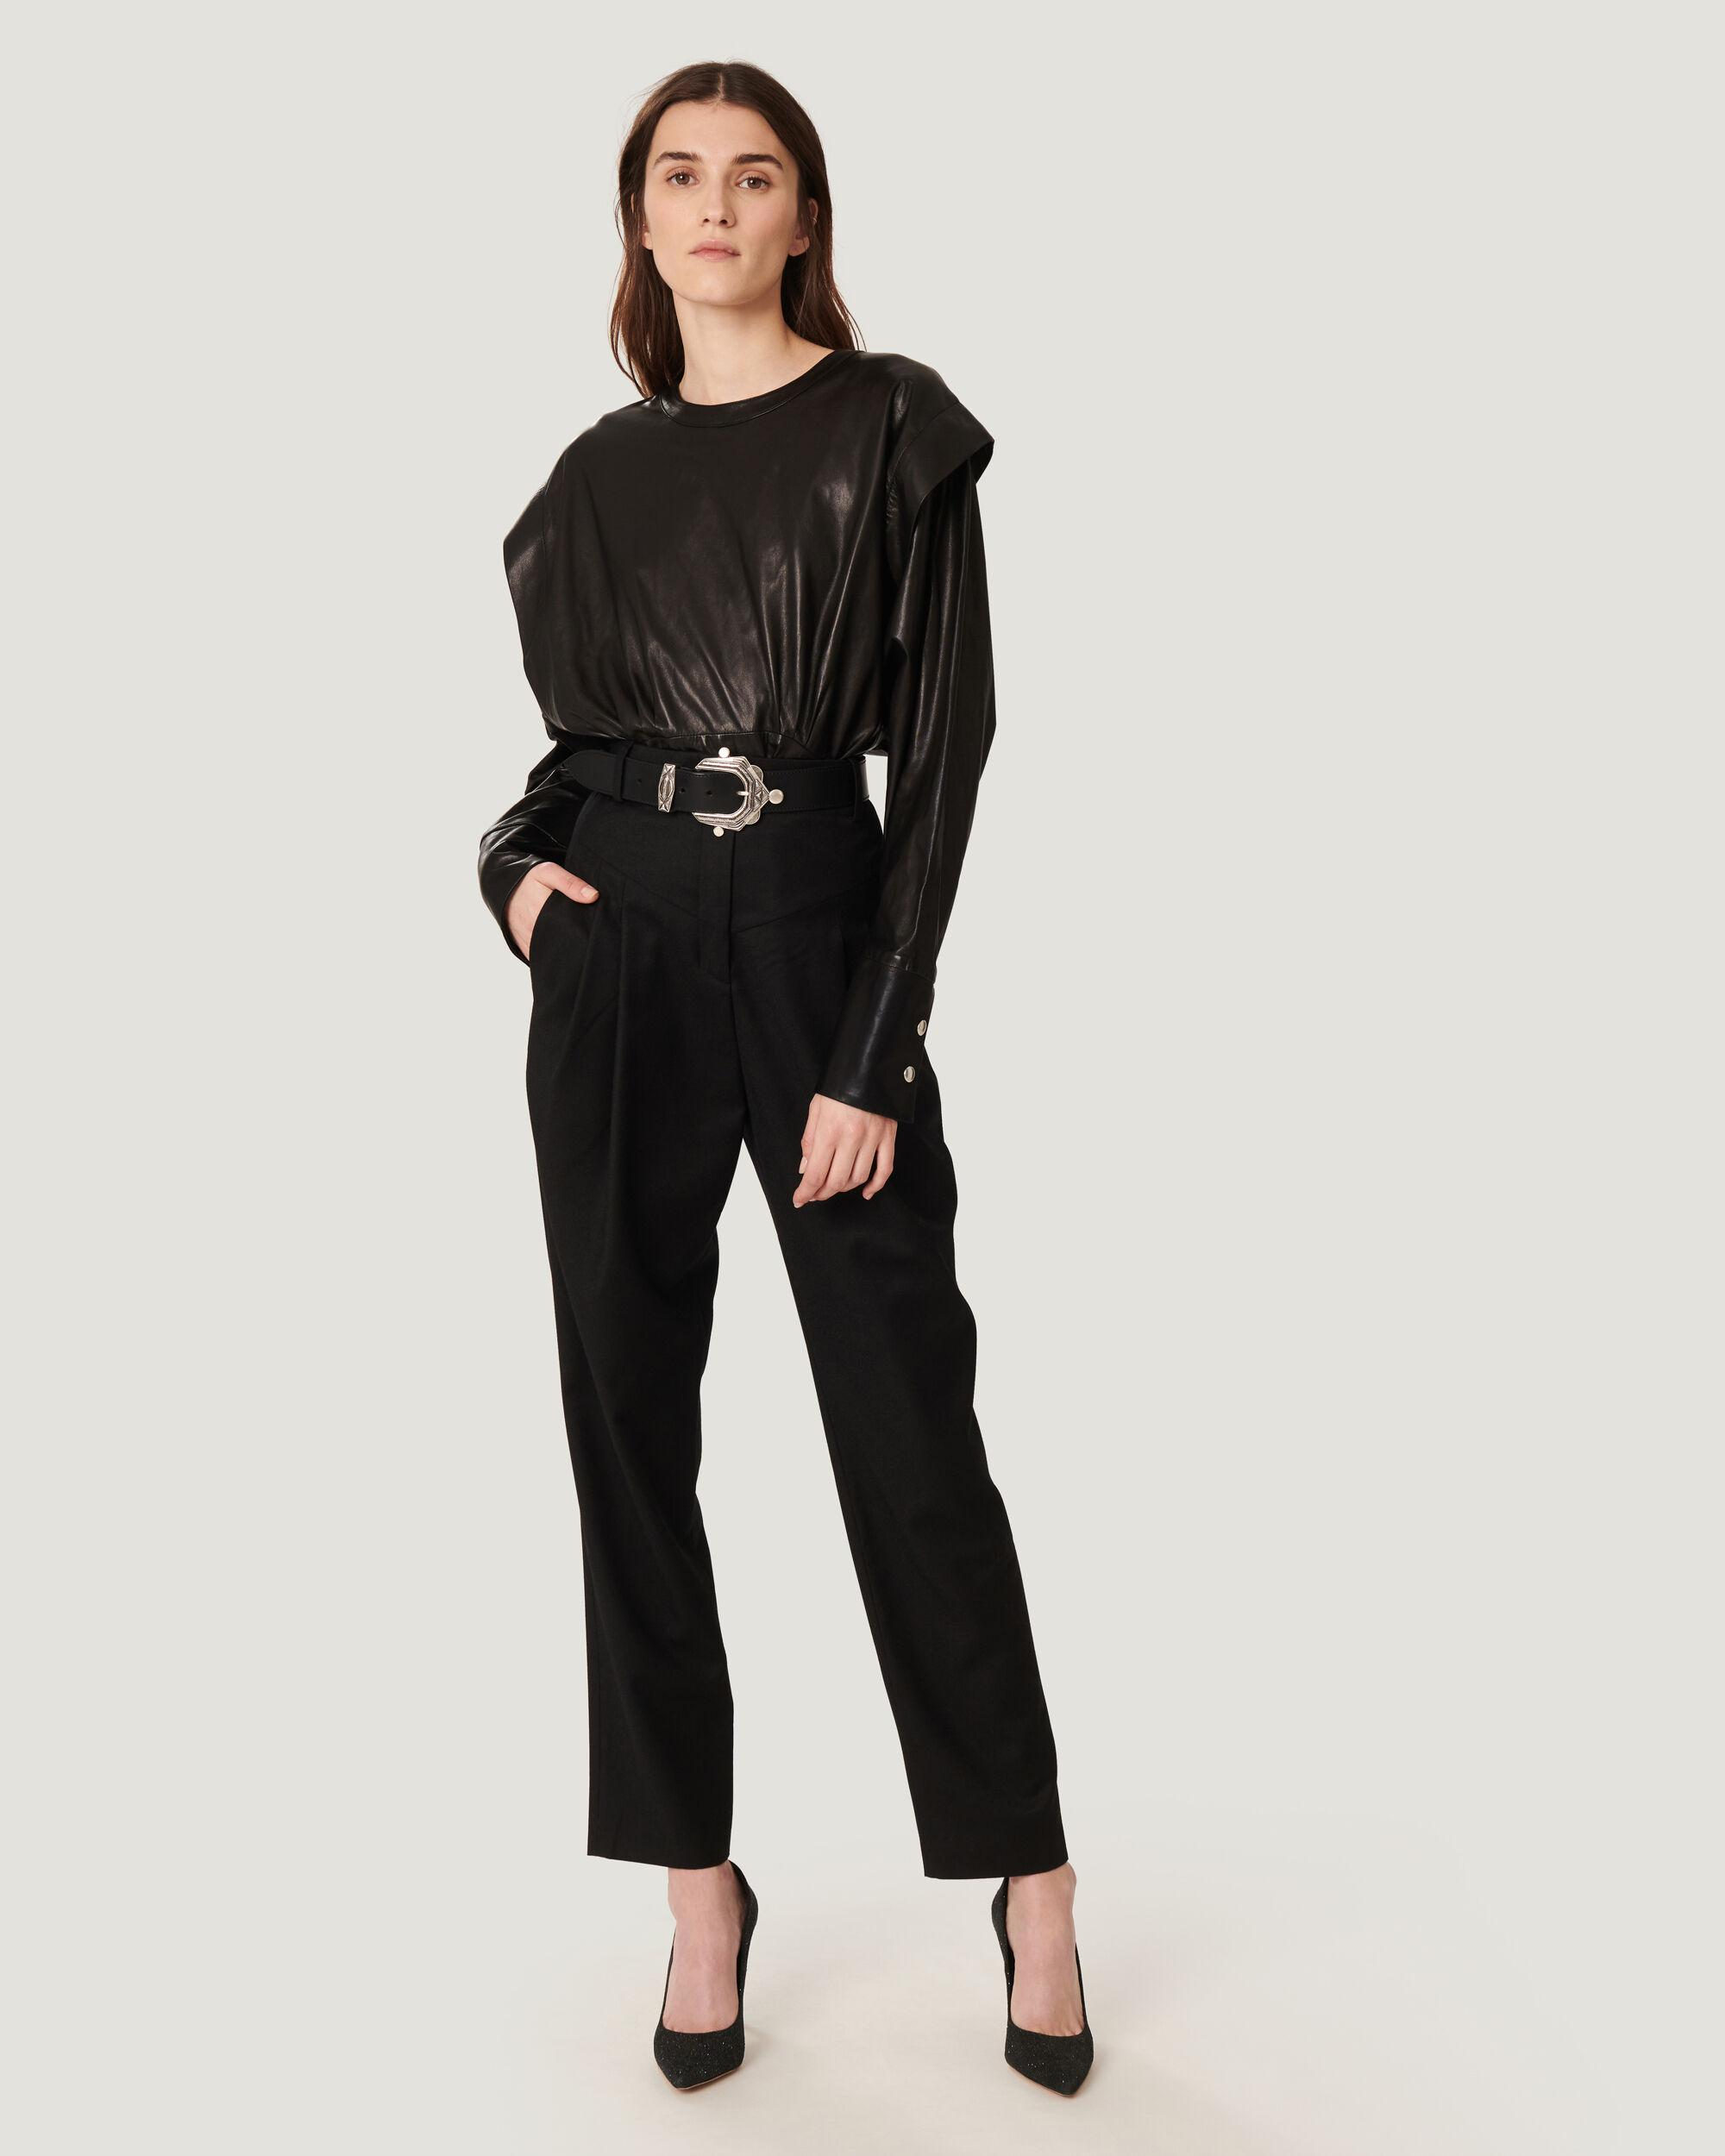 AYASIN PLEATED ANKLE TROUSER PANTS